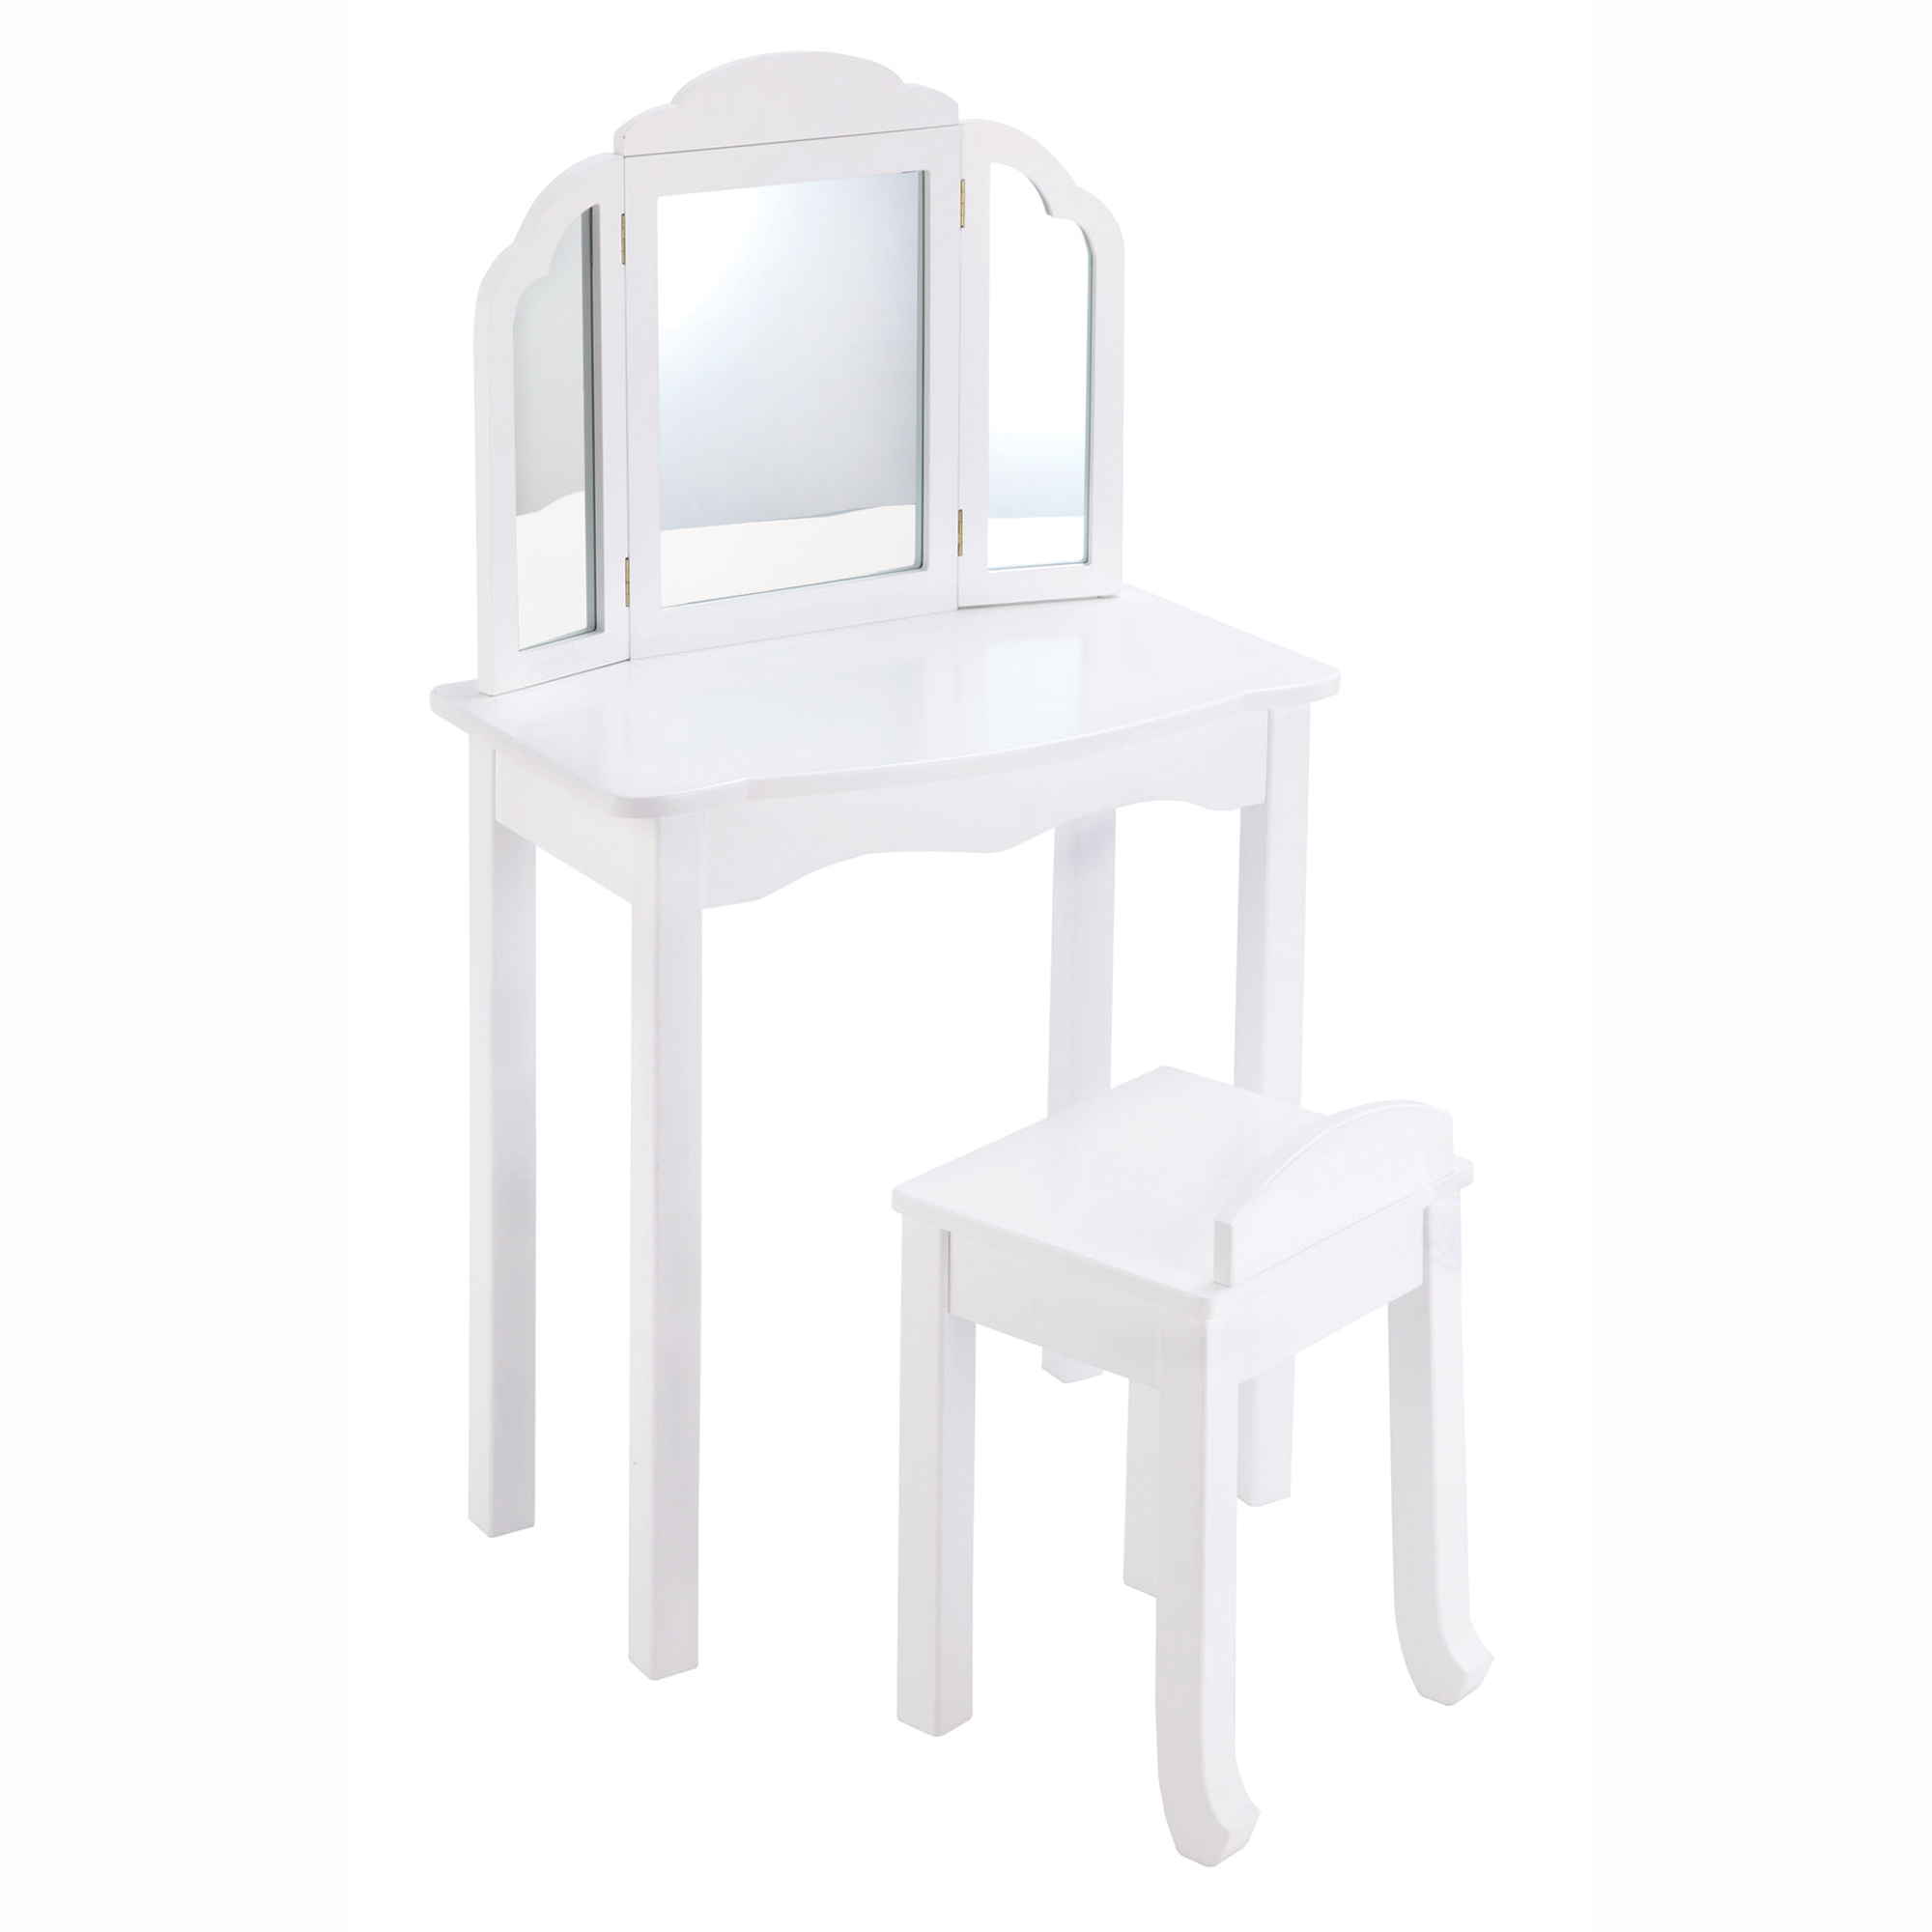 Expressions Vanity And Stool White Walmart Com